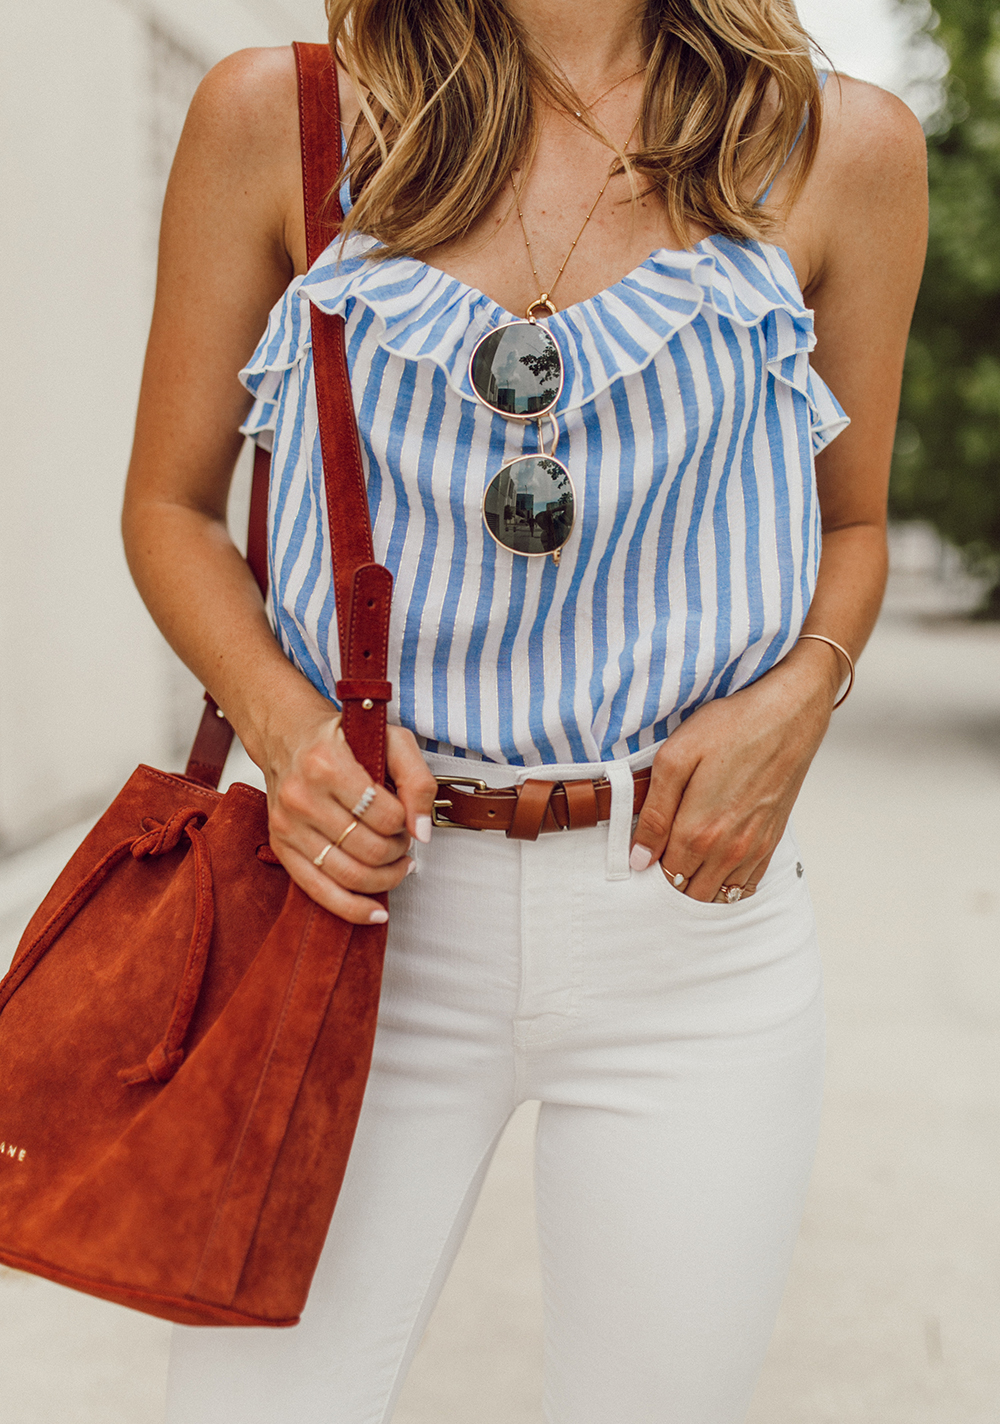 livvyland blog olivia watson austin texas fashion style blogger madewell white jeans sezane cyrille top 4th of july outfit idea 4 - Summer time Staple: White Denim